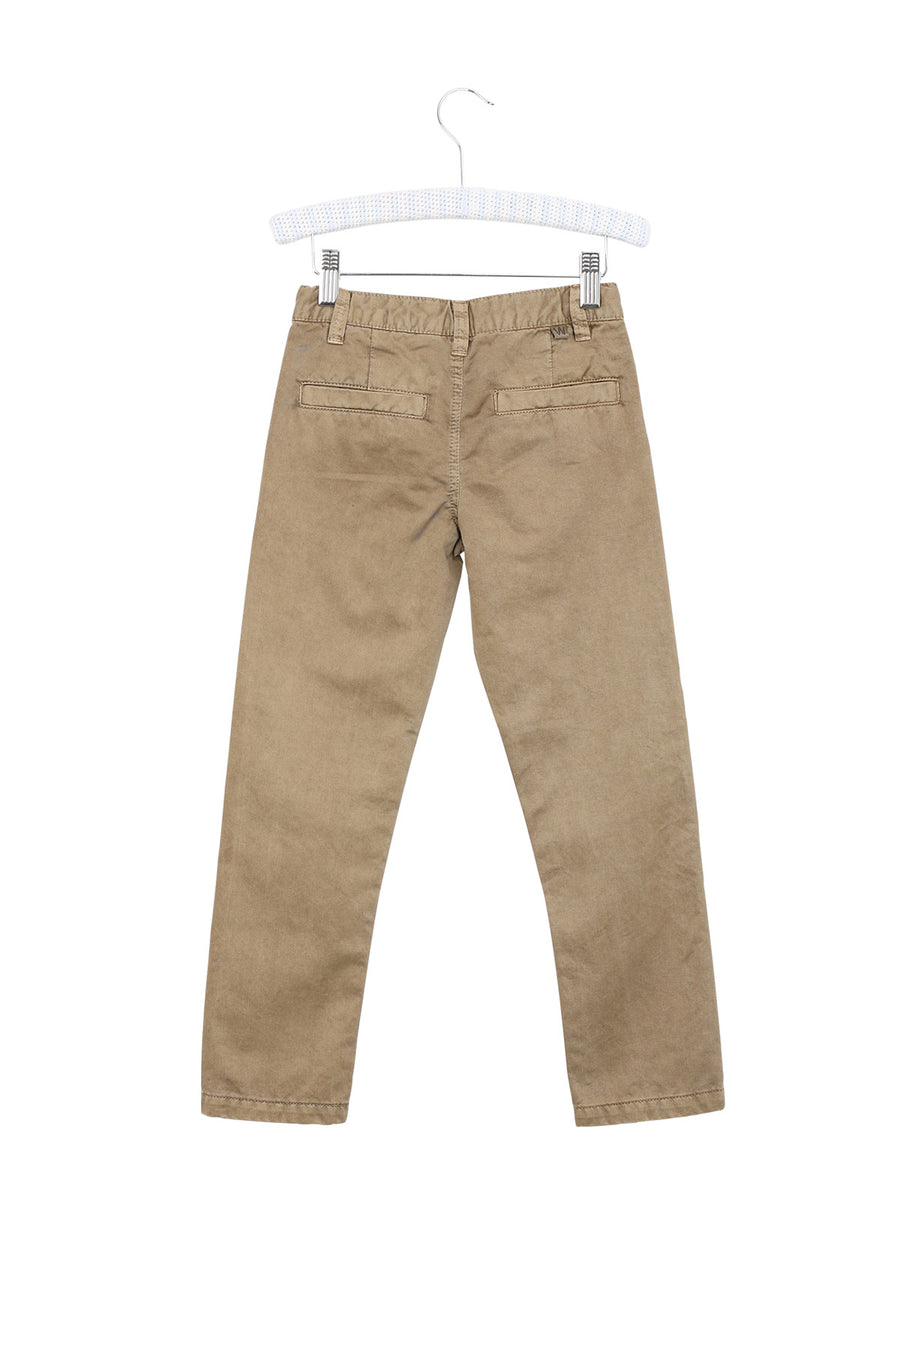 Wheat Dark Sand Chino